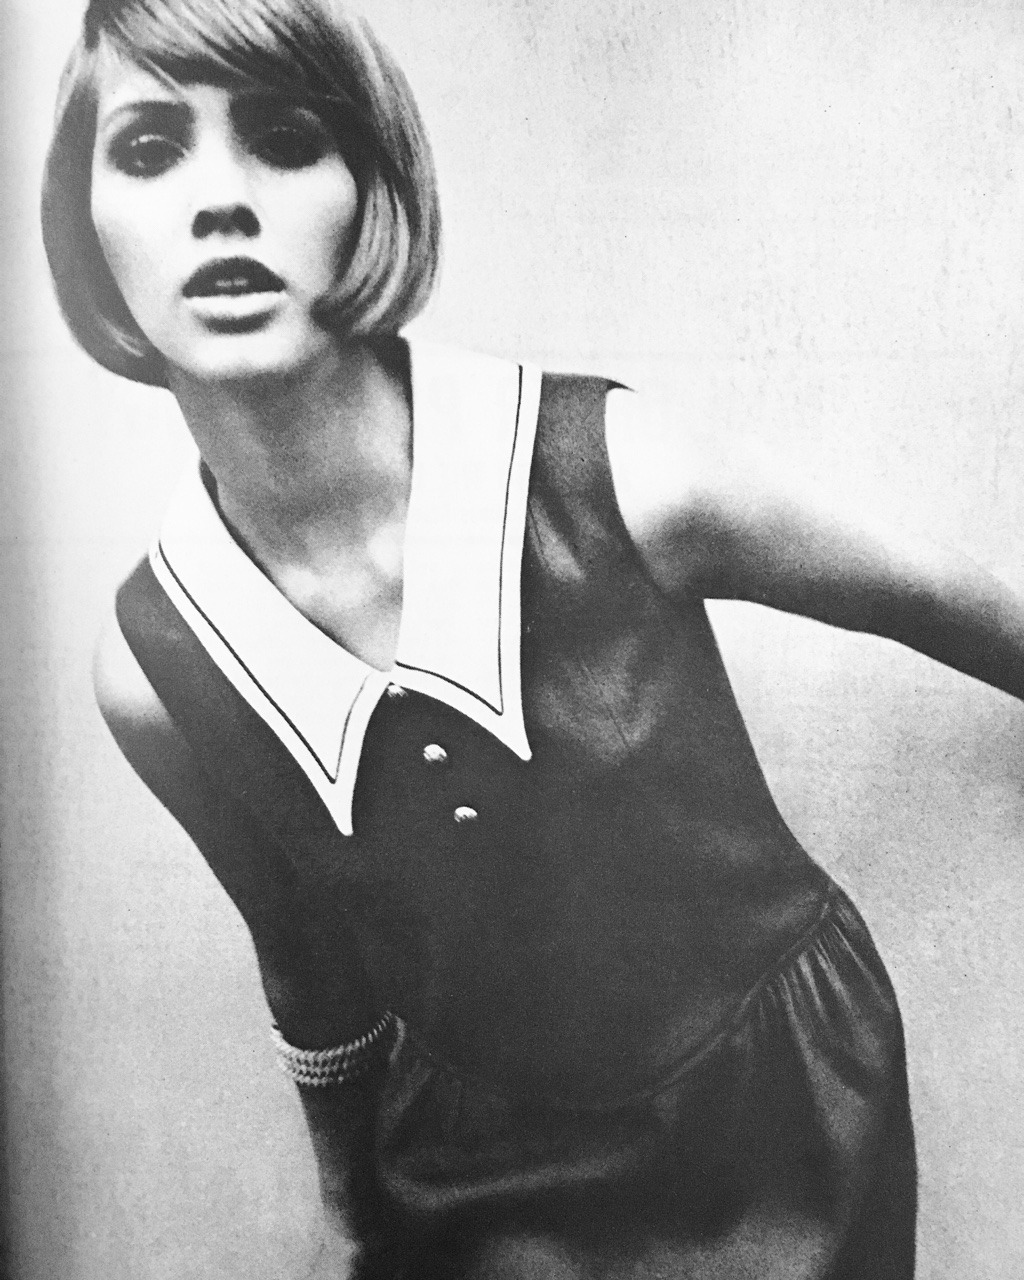 Mademoiselle. June 1964.   Today's prompt is My Style and I've always gravitated toward the '60s mod look.